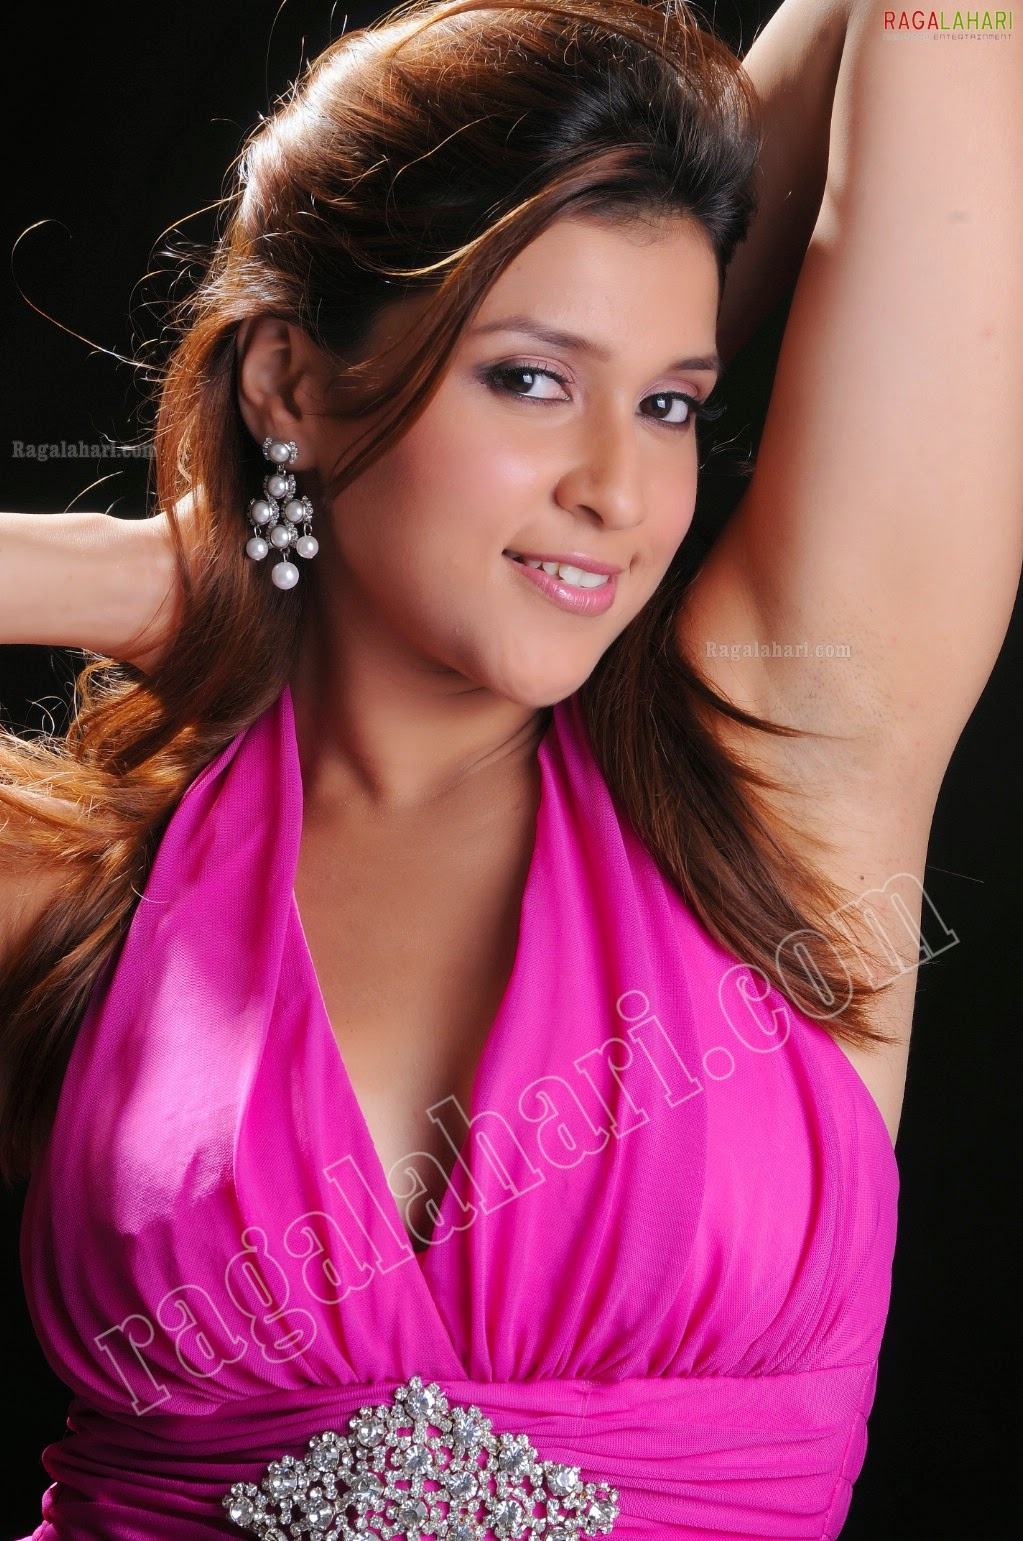 Pictures from indian movies and actress: Manara chopra